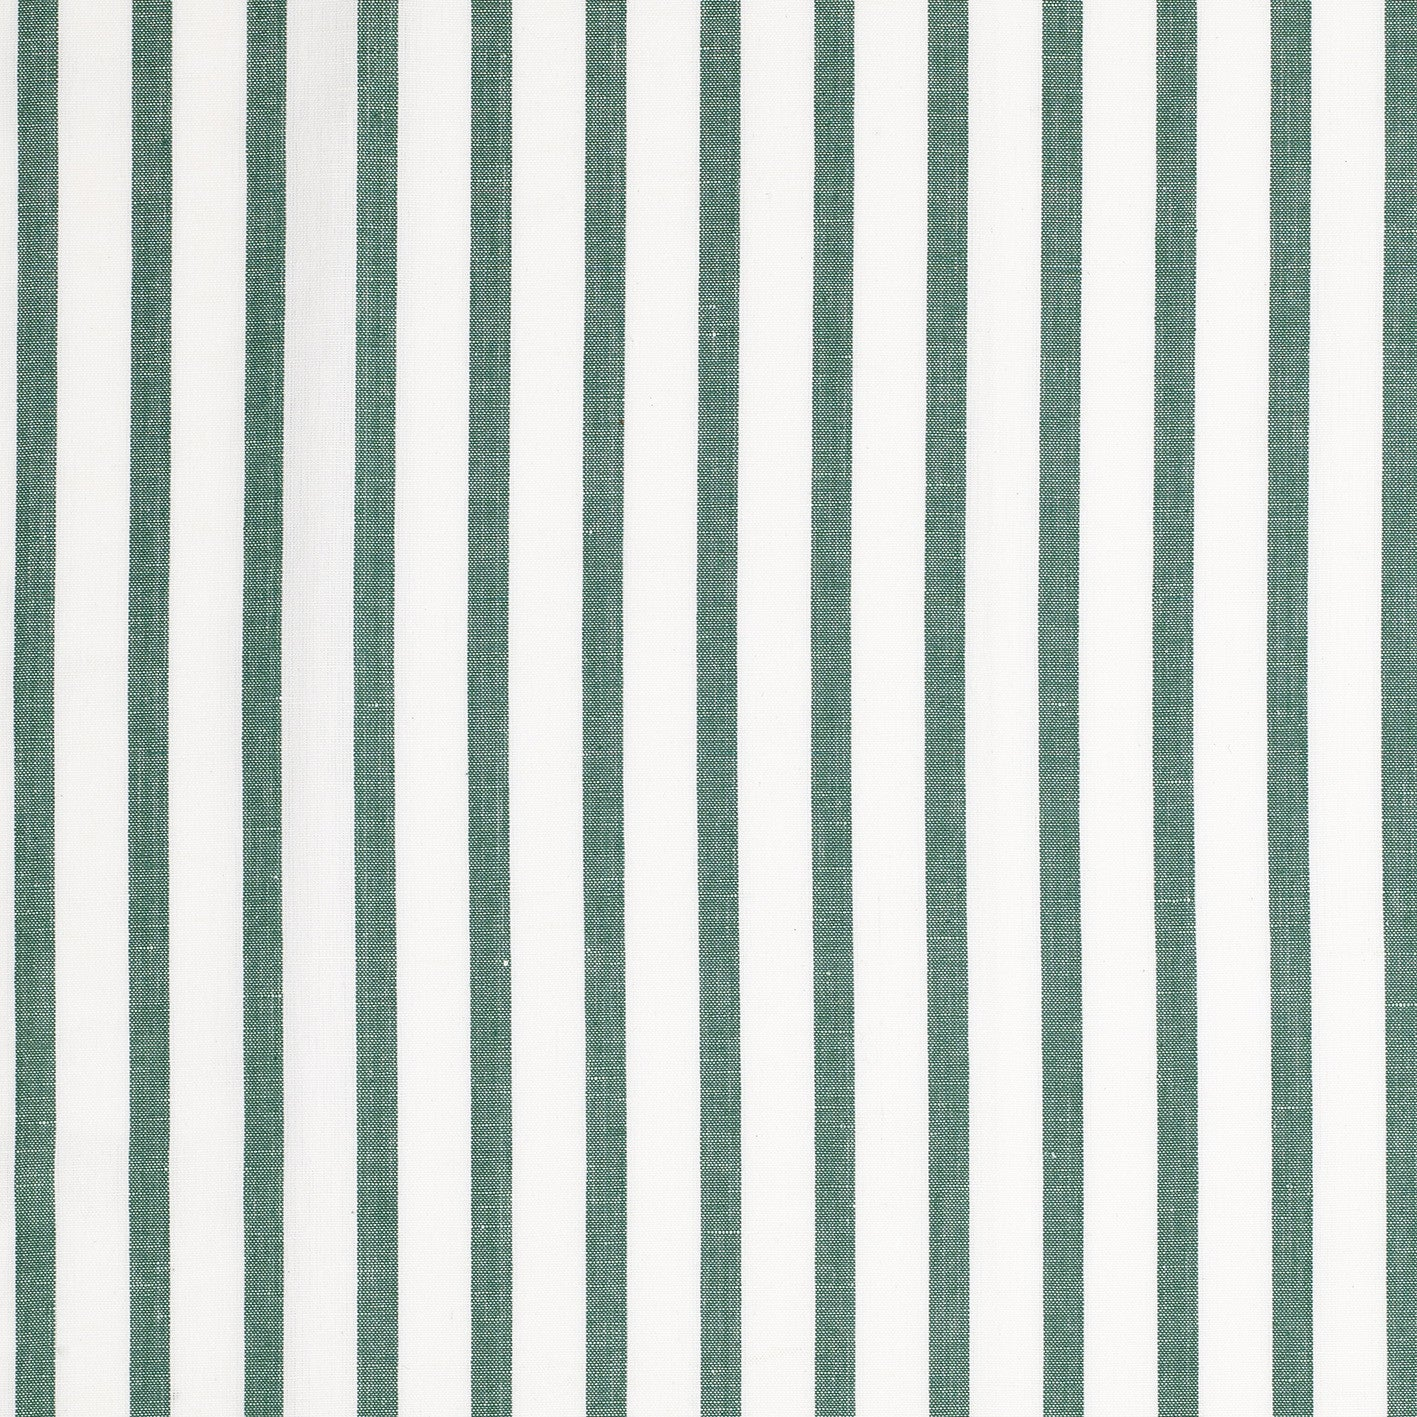 Autumn Ticking Stripe Cotton Linen Fabric by the Meter in Dark Moss Green